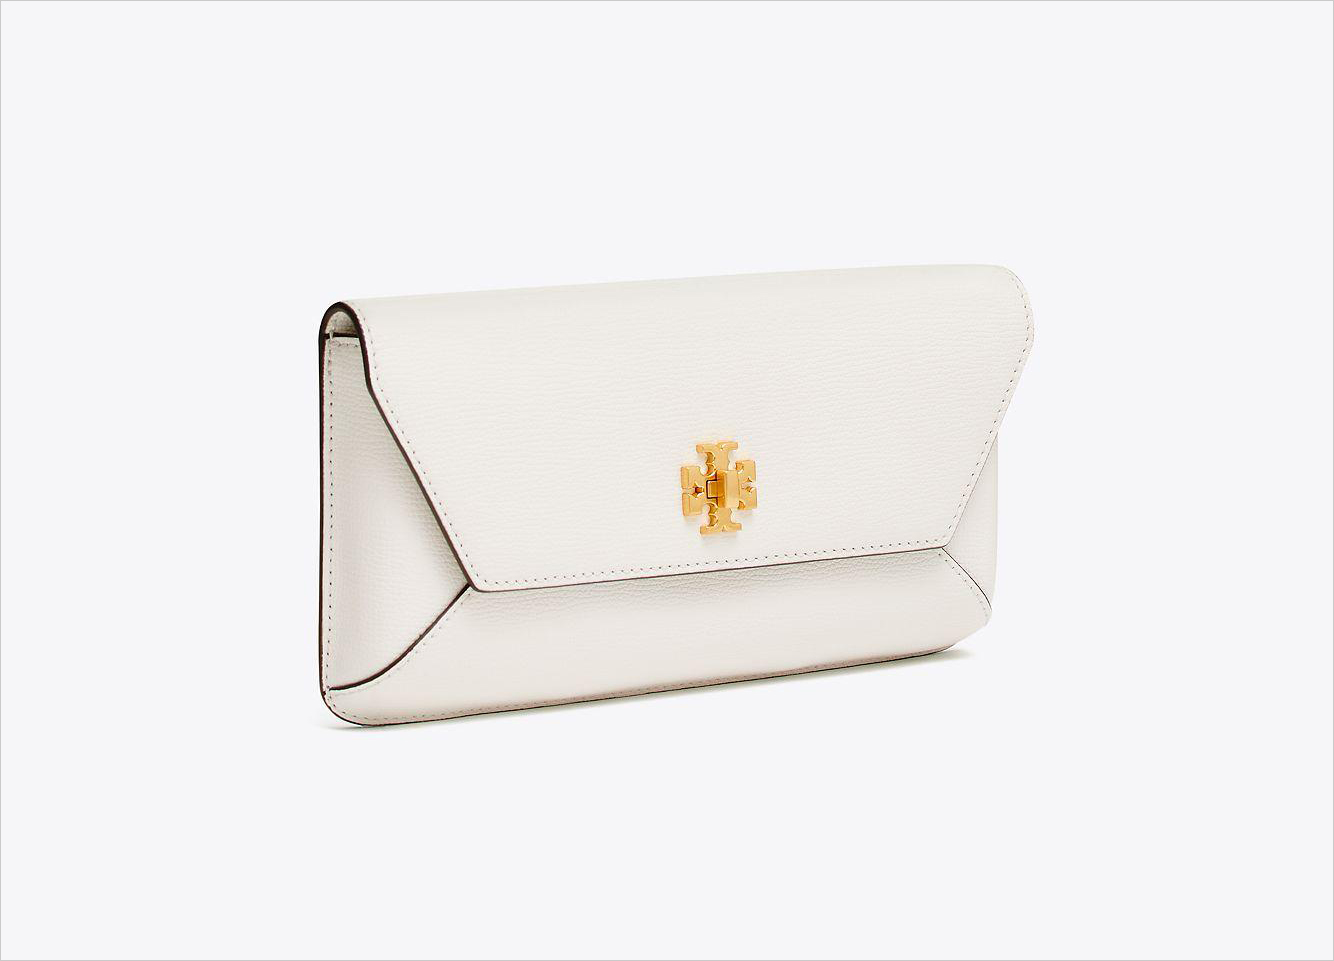 Tory Burch Kira envelope clutch white and gold wedding purse clutch ideas 4th fourth of july sales